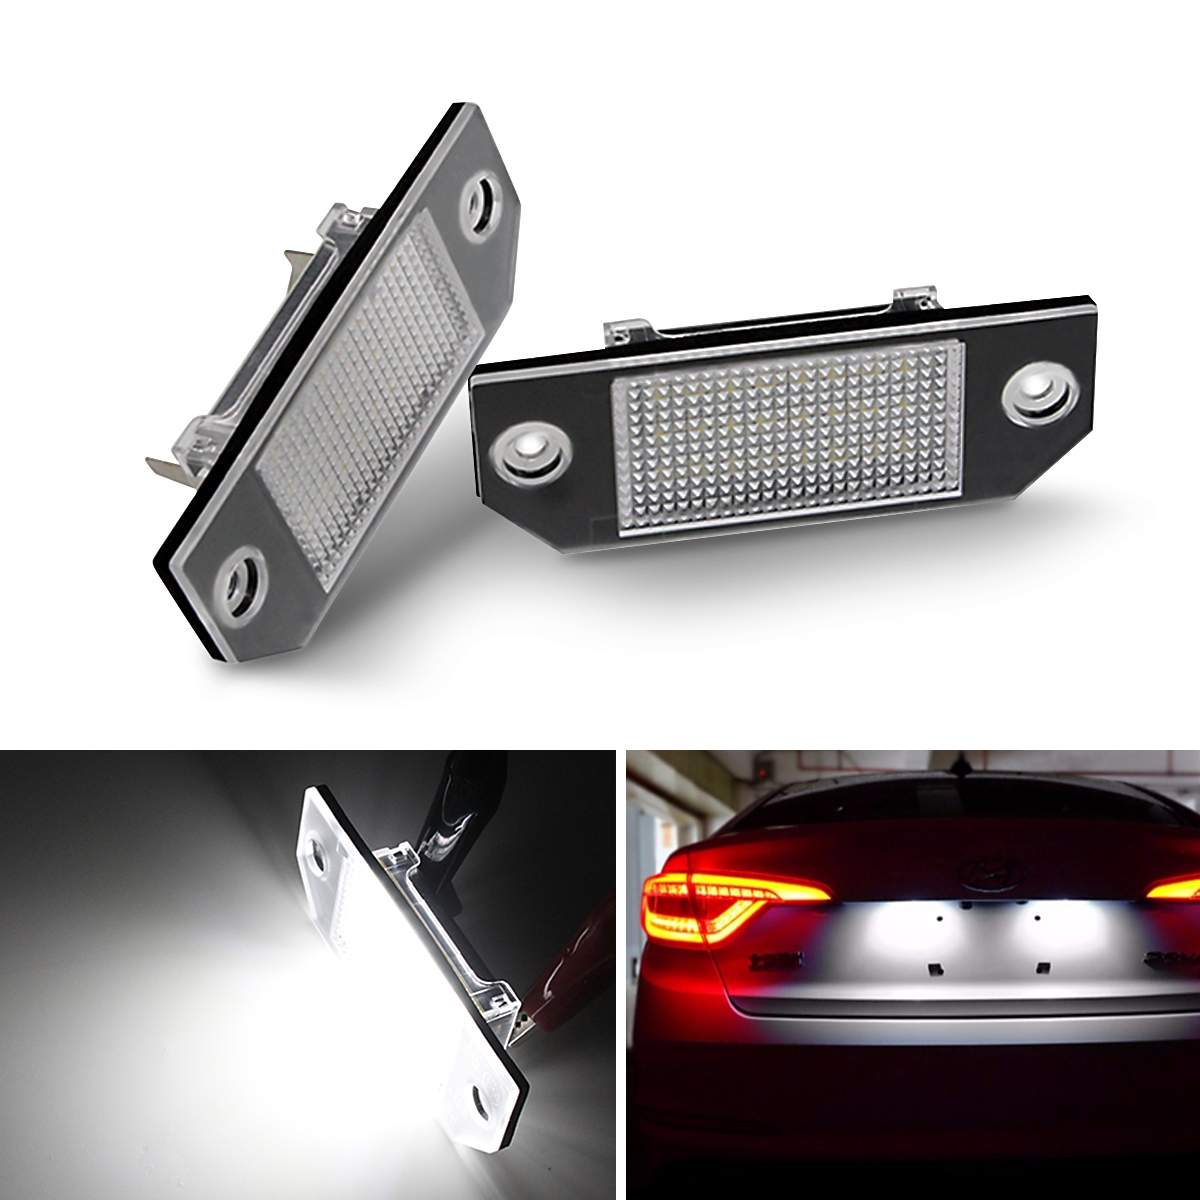 2X 24 LEDs Car Number License Plate Light  For Ford Focus 2 C-Max Ford Focus MK2 2003 2003 - 2019